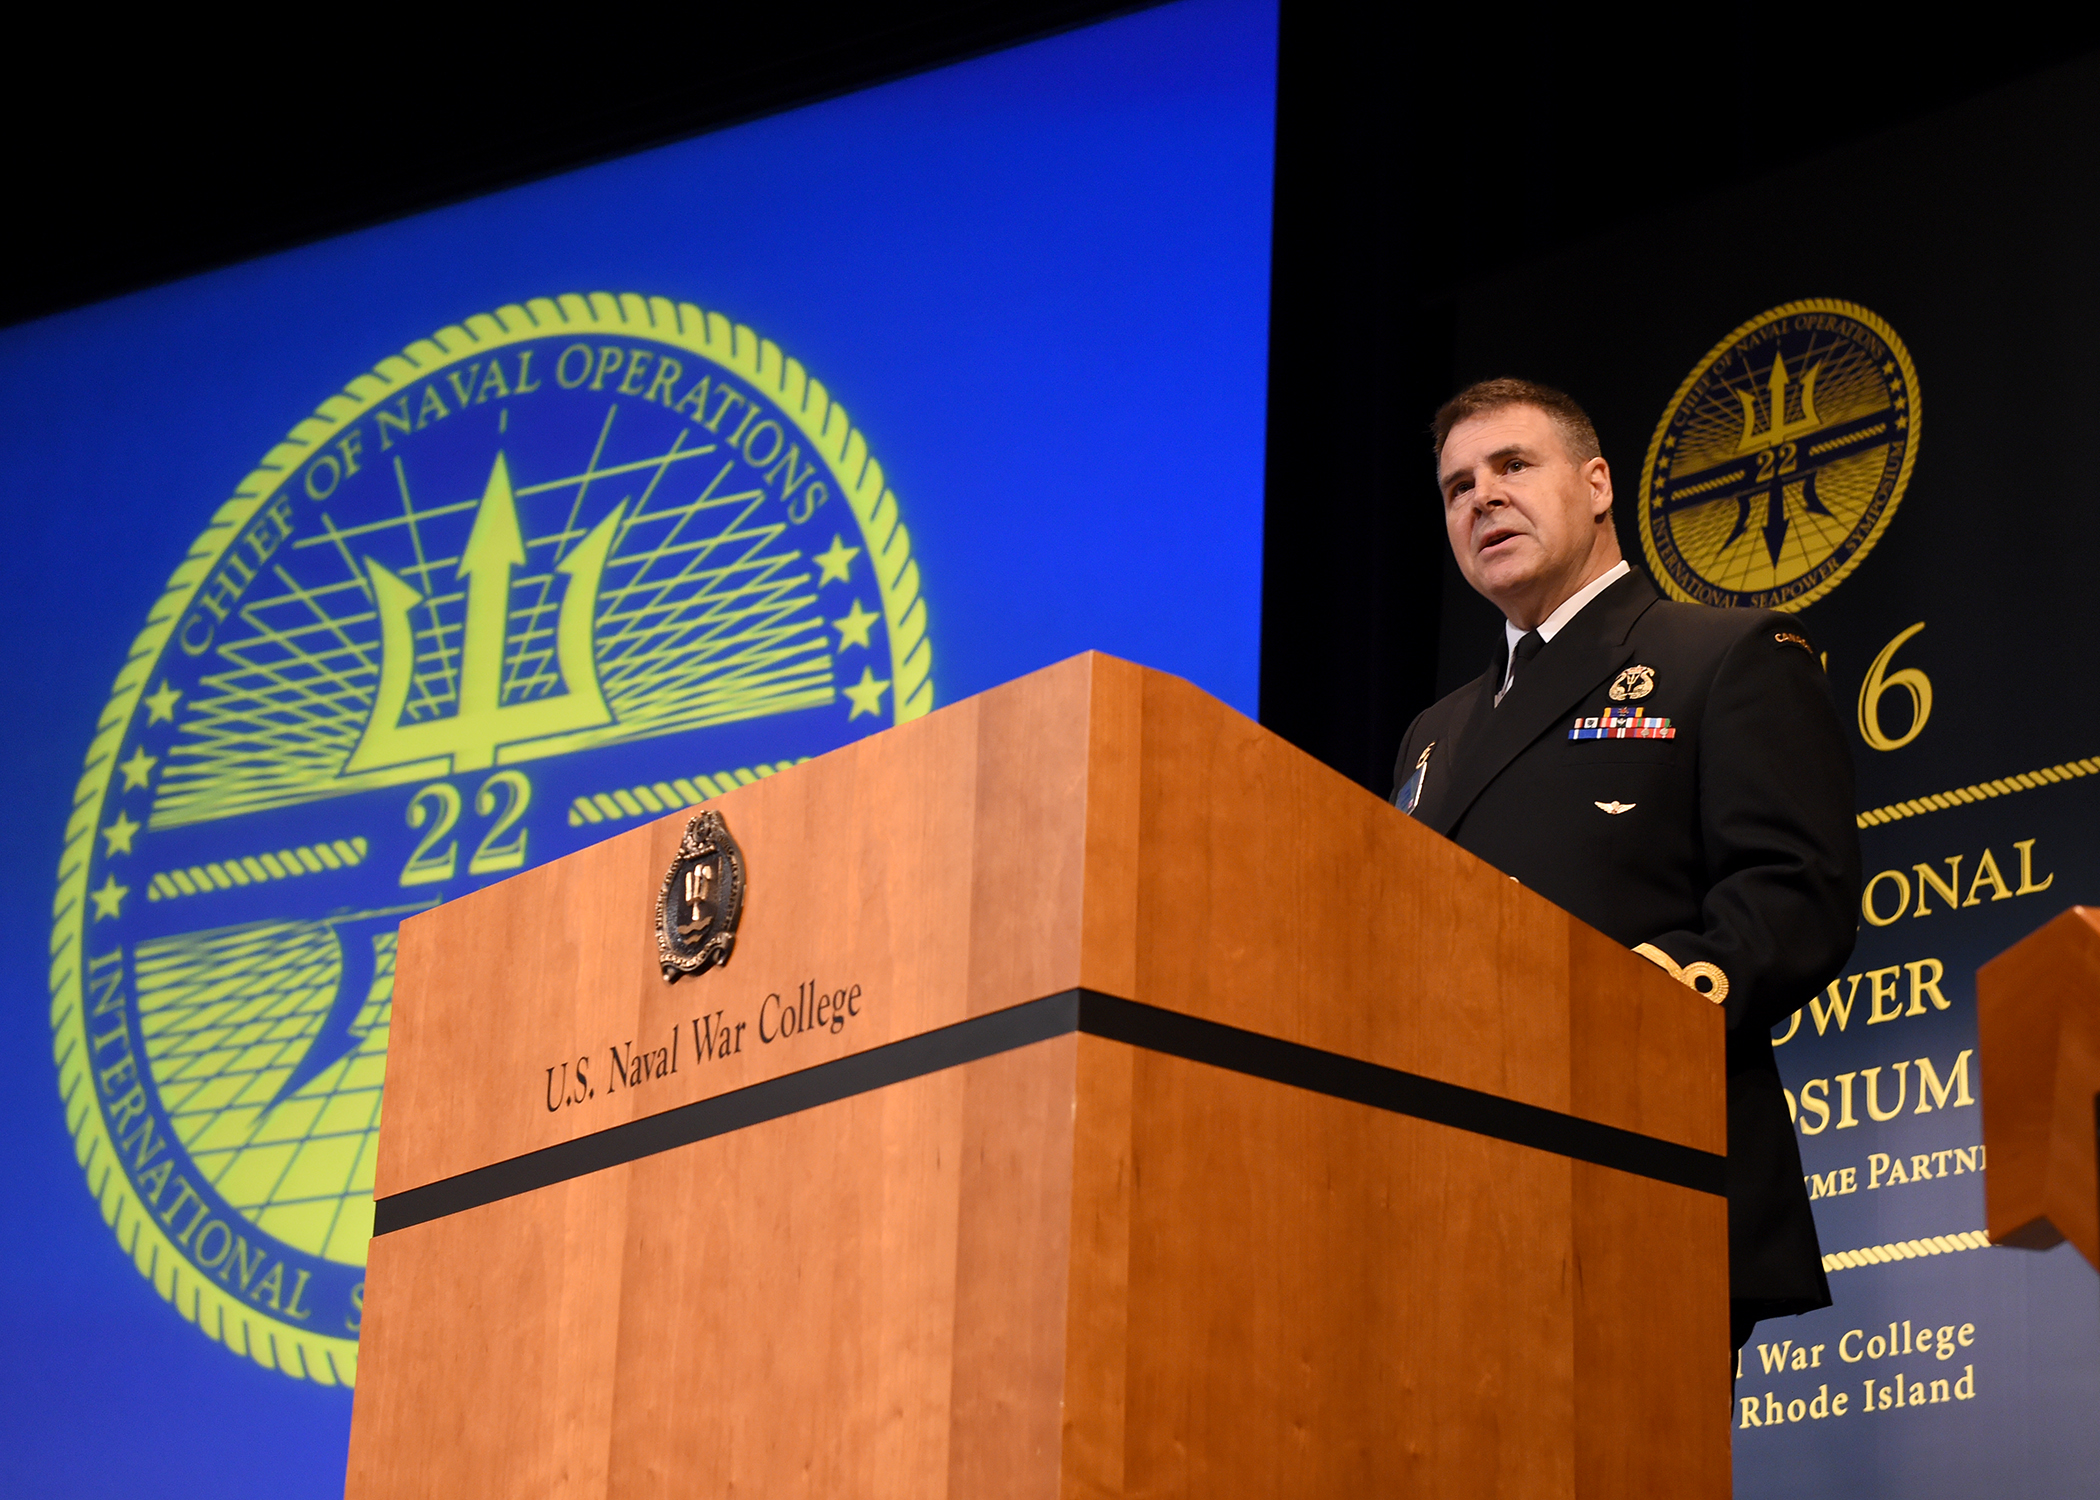 VAdm Ron Lloyd, Commander Royal Canadian Navy, addresses the International Seapower Symposium in Newport, Rhode Island on September 21, 2016. U.S. Navy photo by Mass Communication Specialist 2nd Class Jess Lewis